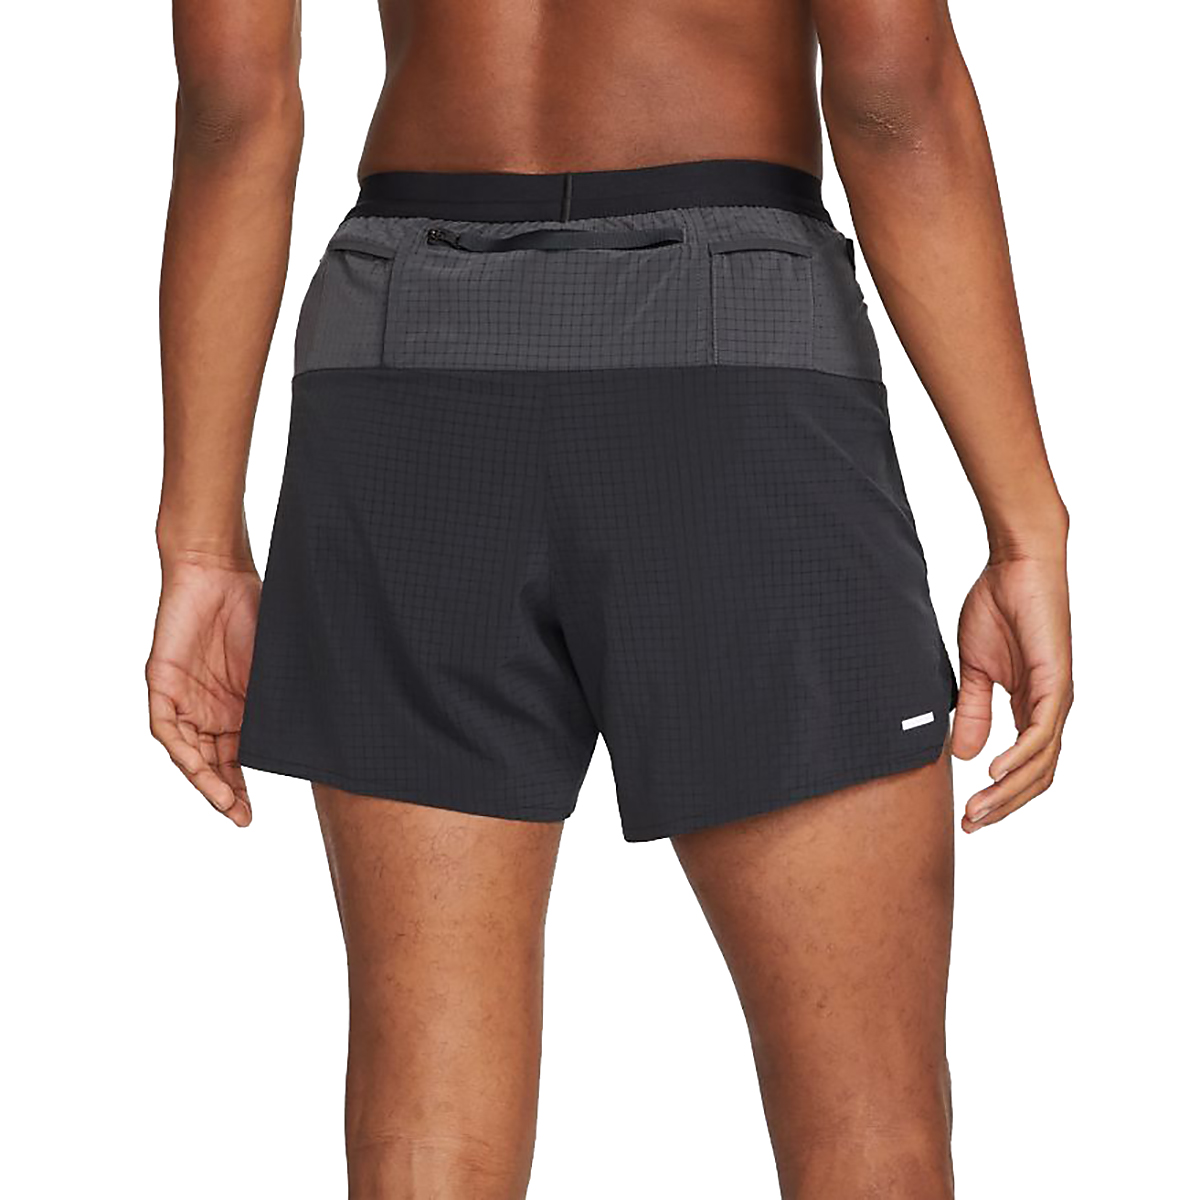 Men's Nike Dri-FIT Flex Stride Trail Shorts - Color: Black/Dark Smoke Grey/White - Size: S, Black/Dark Smoke Grey/White, large, image 2